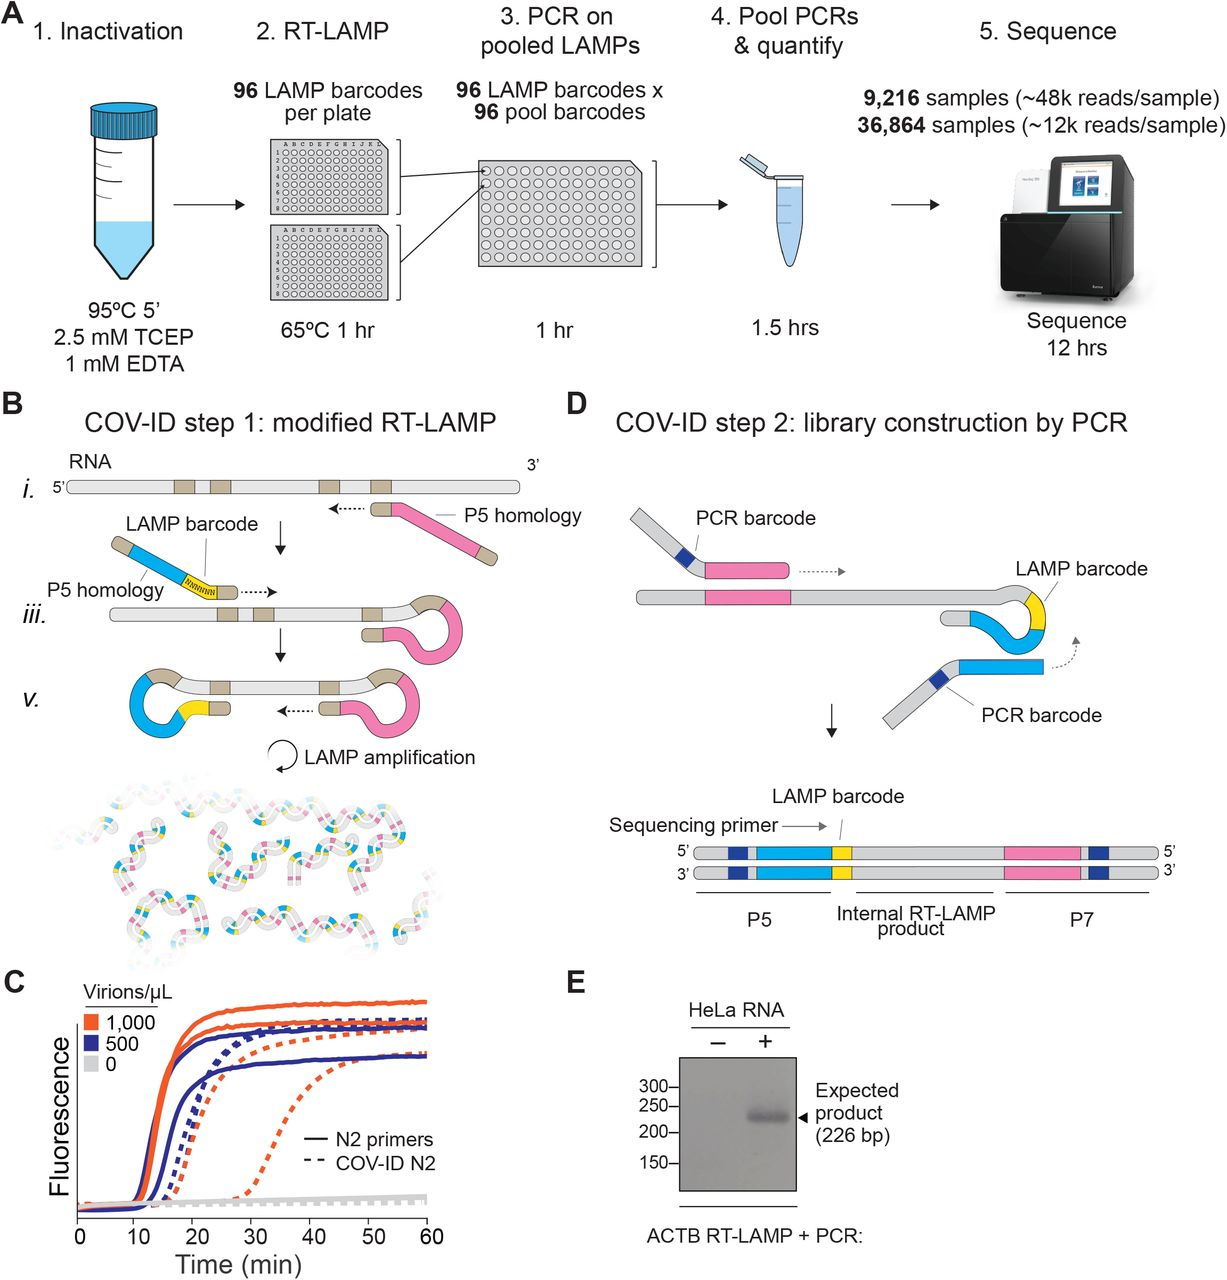 """Barcoding and PCR amplification of <t>RT-LAMP</t> products (A) Overview of COV-ID. Saliva is collected and inactivated prior to RT-LAMP performed with up to 96 individual sample barcoded primers. LAMP reactions are pooled and further amplified via PCR to introduce Illumina adapter sequences and pool-level dual indexes. A single thermal cycler can amplify 96 or 384 such pools and the resulting """"super-pool"""" can be sequenced overnight to detect multiple amplicons from 9,216 or 36,864 individual patient samples (number of reads in parenthesis assume an output of ∼450M reads from a NextSeq 500). (B) Schematic of the RT-LAMP (step I) of COV-ID. Selected numbered intermediates of RT-LAMP reaction are shown to illustrate how the LAMP barcode, shown in yellow, and the P5 and P7 homology sequences (blue and pink, respectively) are introduced in the final LAMP product. Upon generating the dumb-bell intermediate the reaction proceeds through rapid primed and self-primed extensions to form mixture of various <t>DNA</t> amplicons containing sequences for PCR amplification. A more detailed version of the LAMP phase of COV-ID, including specific sequences, is illustrated in Fig. S1 . (C) Conventional RT-LAMP primers (solid lines) or primers modified for COV-ID (dotted lines) were used for RT-LAMP of SARS-CoV-2. The numbers of inactivated SARS-CoV-2 virions per µL is indicated in the color legend. (D) Schematic of the PCR (step II) of COV-ID. Following RT-LAMP, up to 96 reactions are pooled and purified and Illumina libraries are generated directly by PCR with dual-indexed P5 and P7 adapters in preparation for sequencing. (E) COV-ID primers targeting ACTB mRNA were used for RT-LAMP with HeLa total <t>RNA.</t> LAMP was diluted 1:100, amplified via PCR and resolved on 2% agarose gel."""